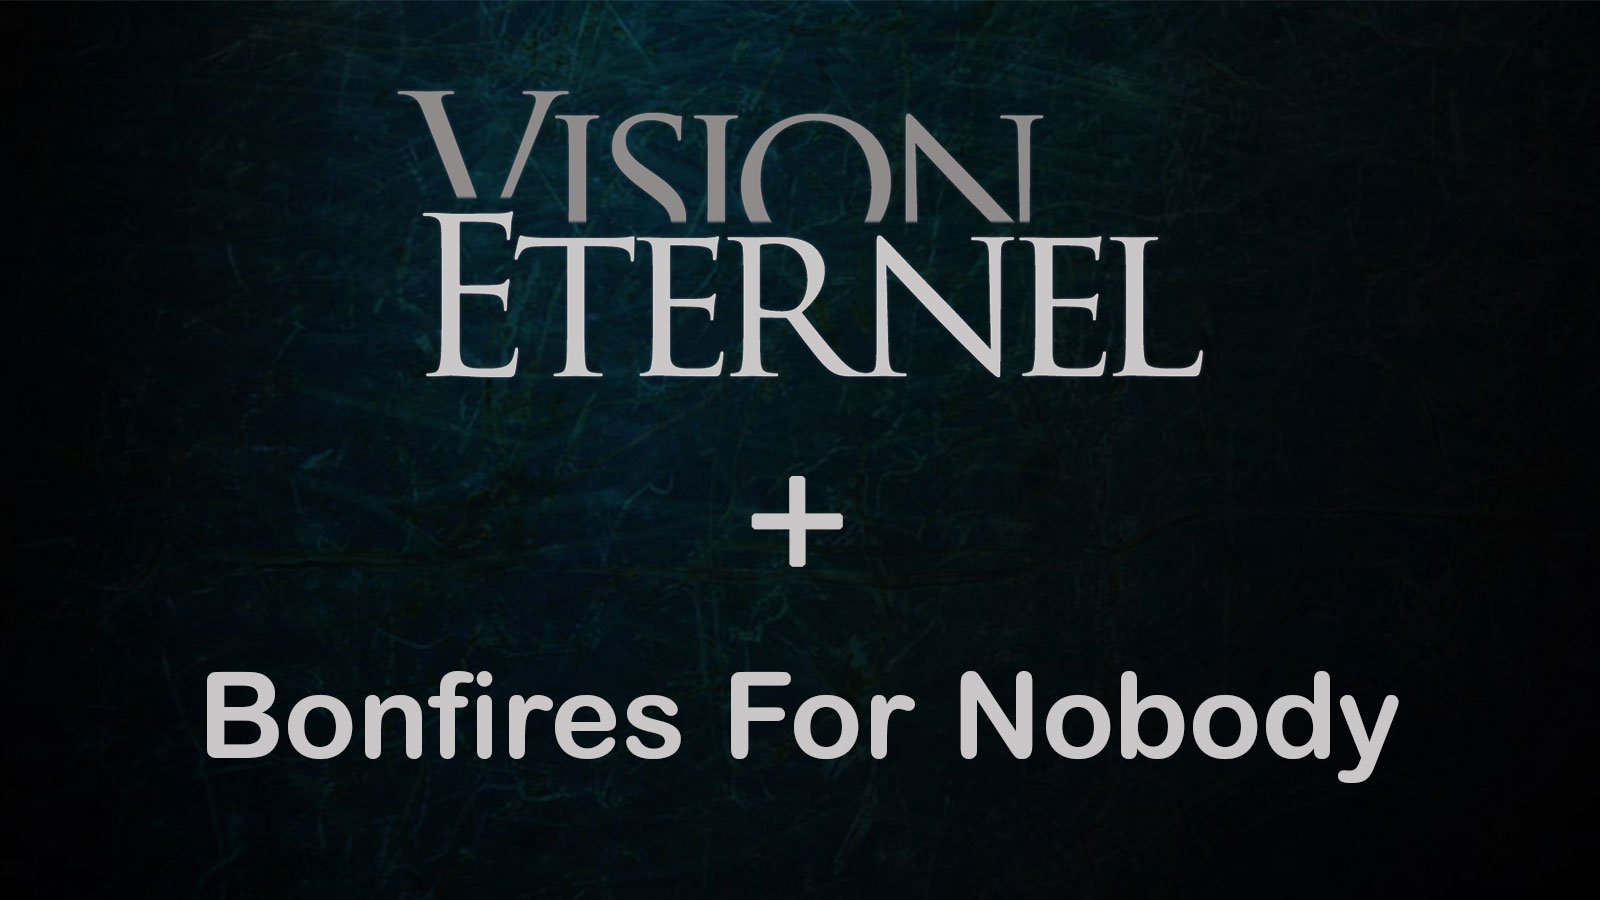 Vision Éternel To Collaborate With Bonfires For Nobody